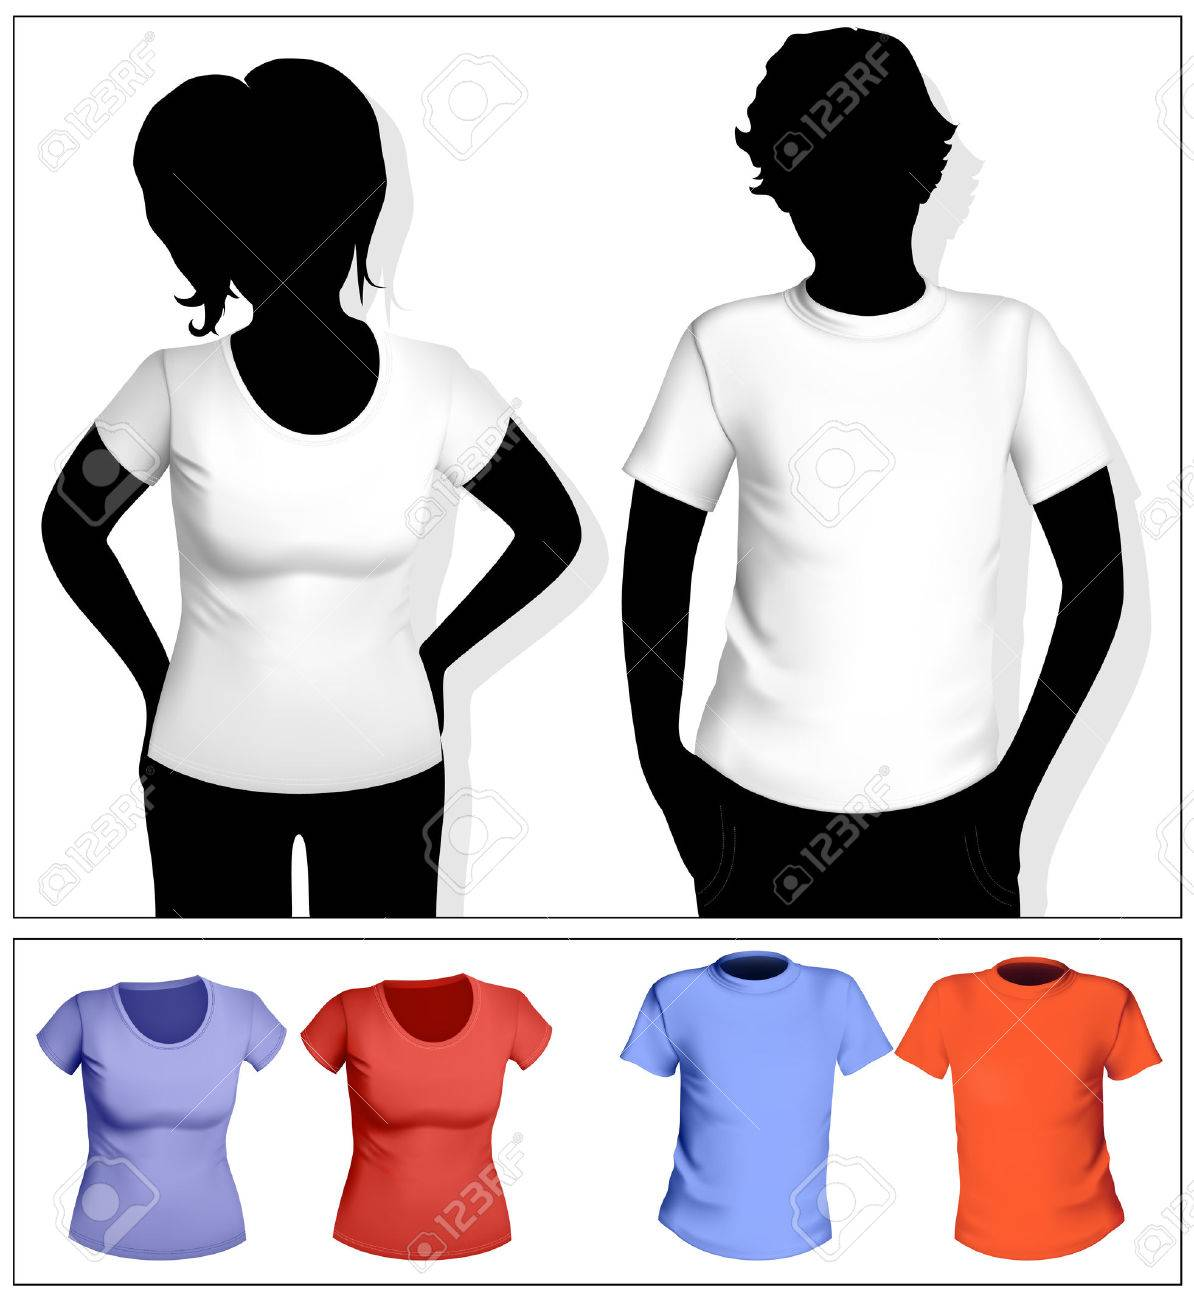 Women's and men's t-shirt template with human body silhouette. White and color. Stock Vector - 6585497